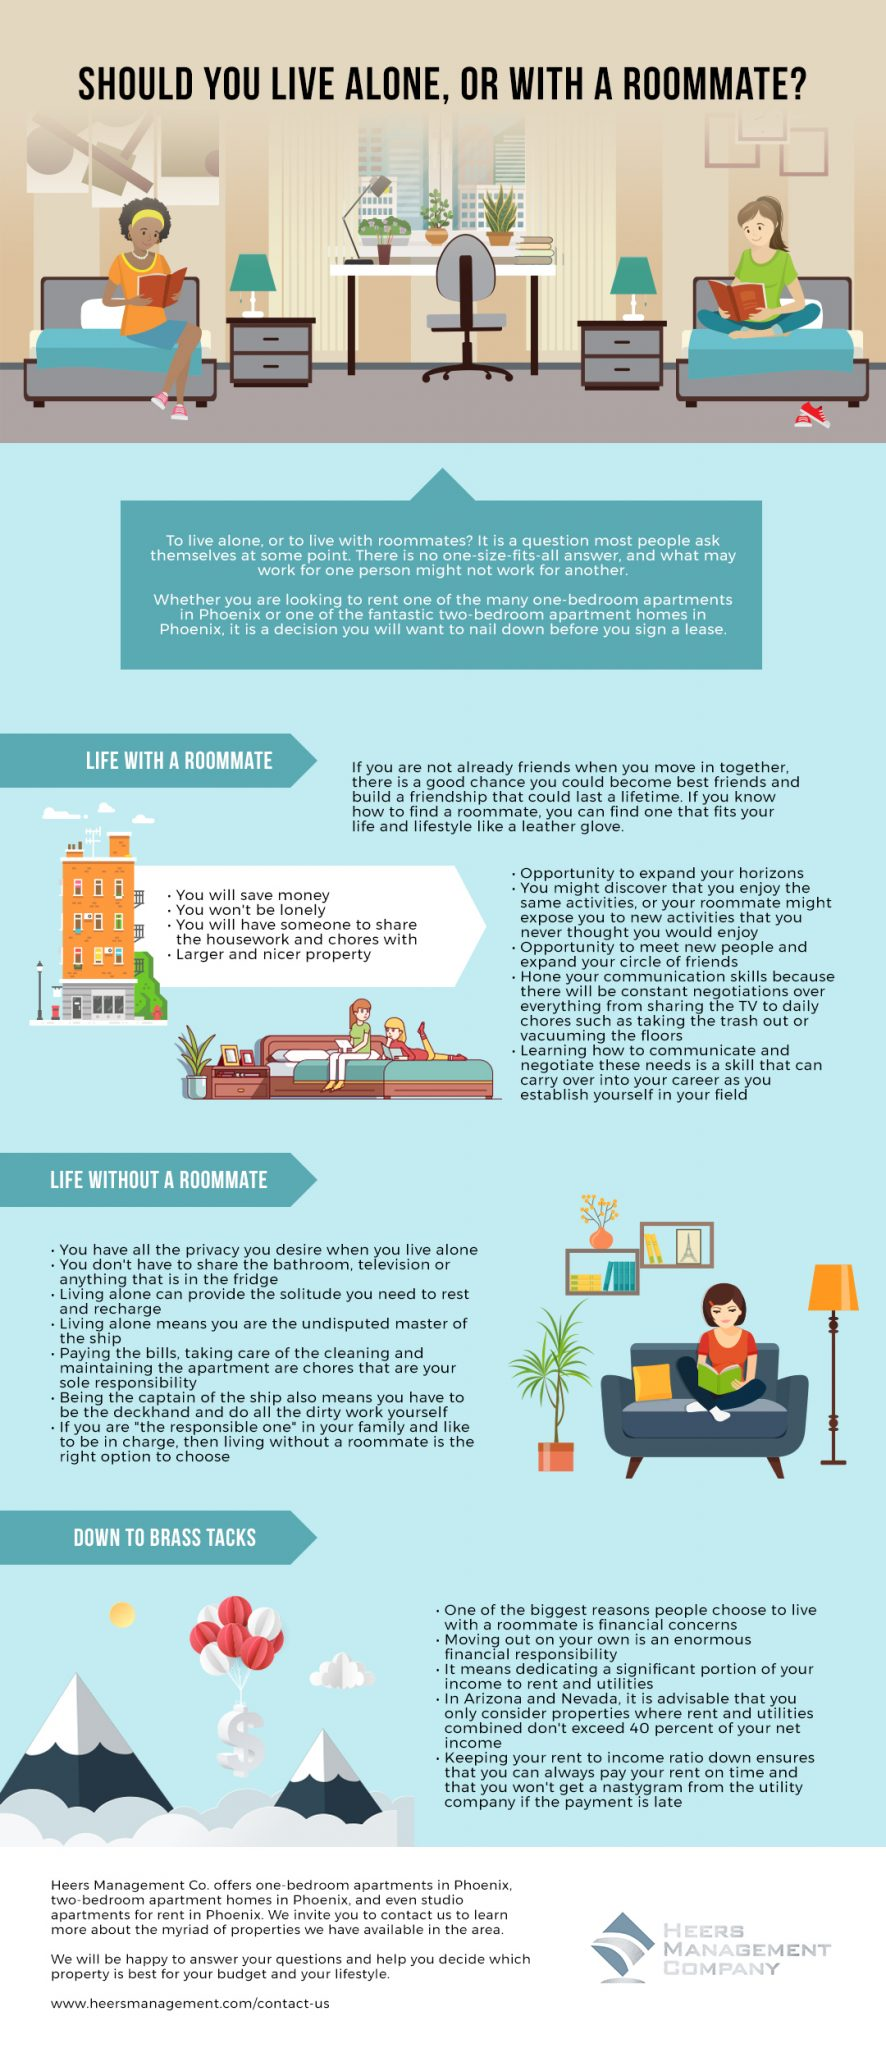 Should You Live Alone, or With a Roommate_